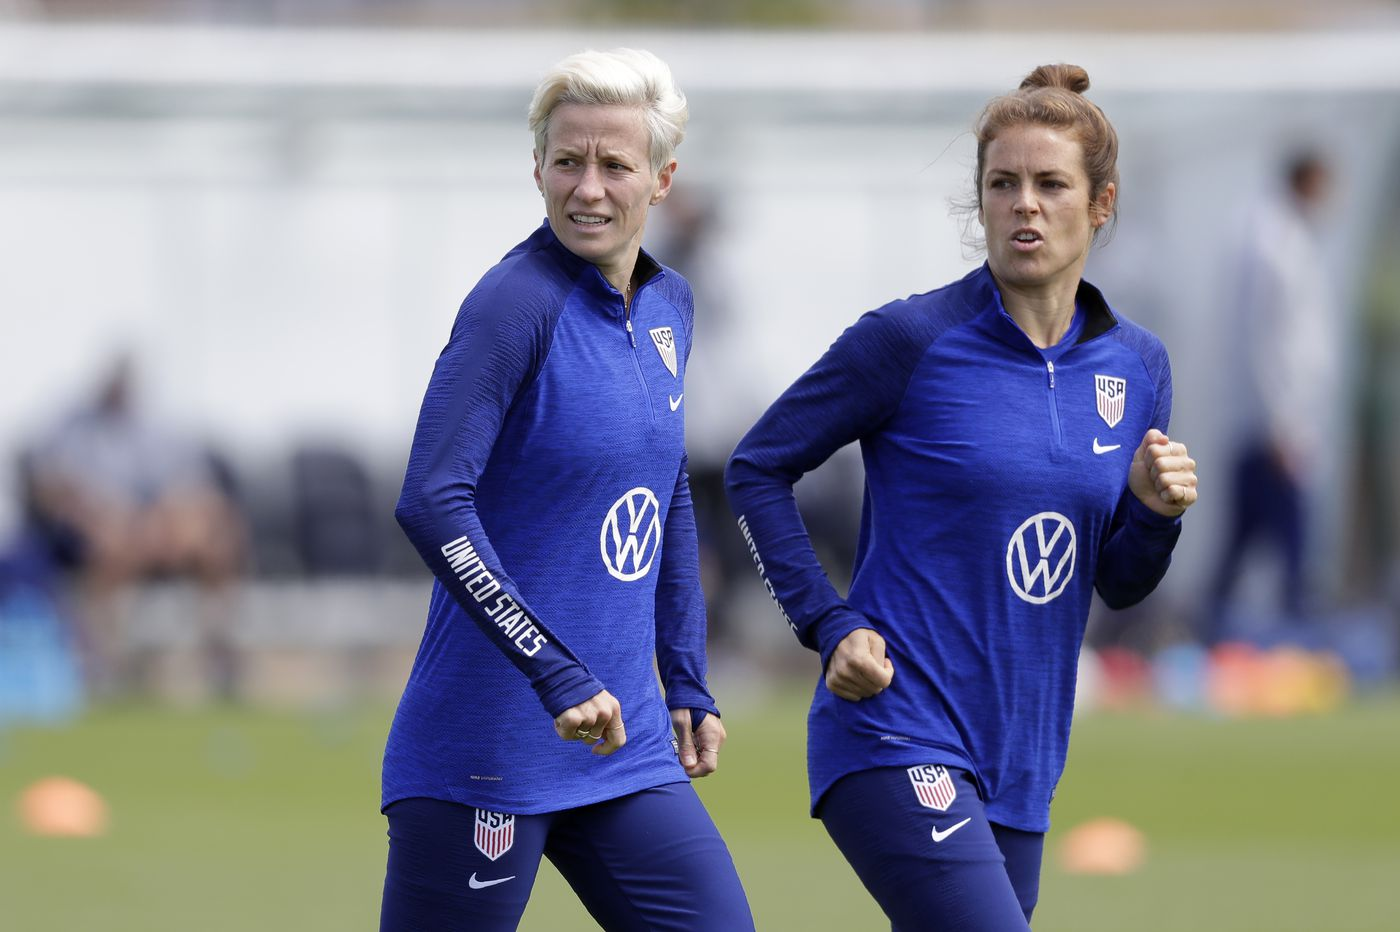 USWNT finally takes field at Women's World Cup, and has plenty to prove